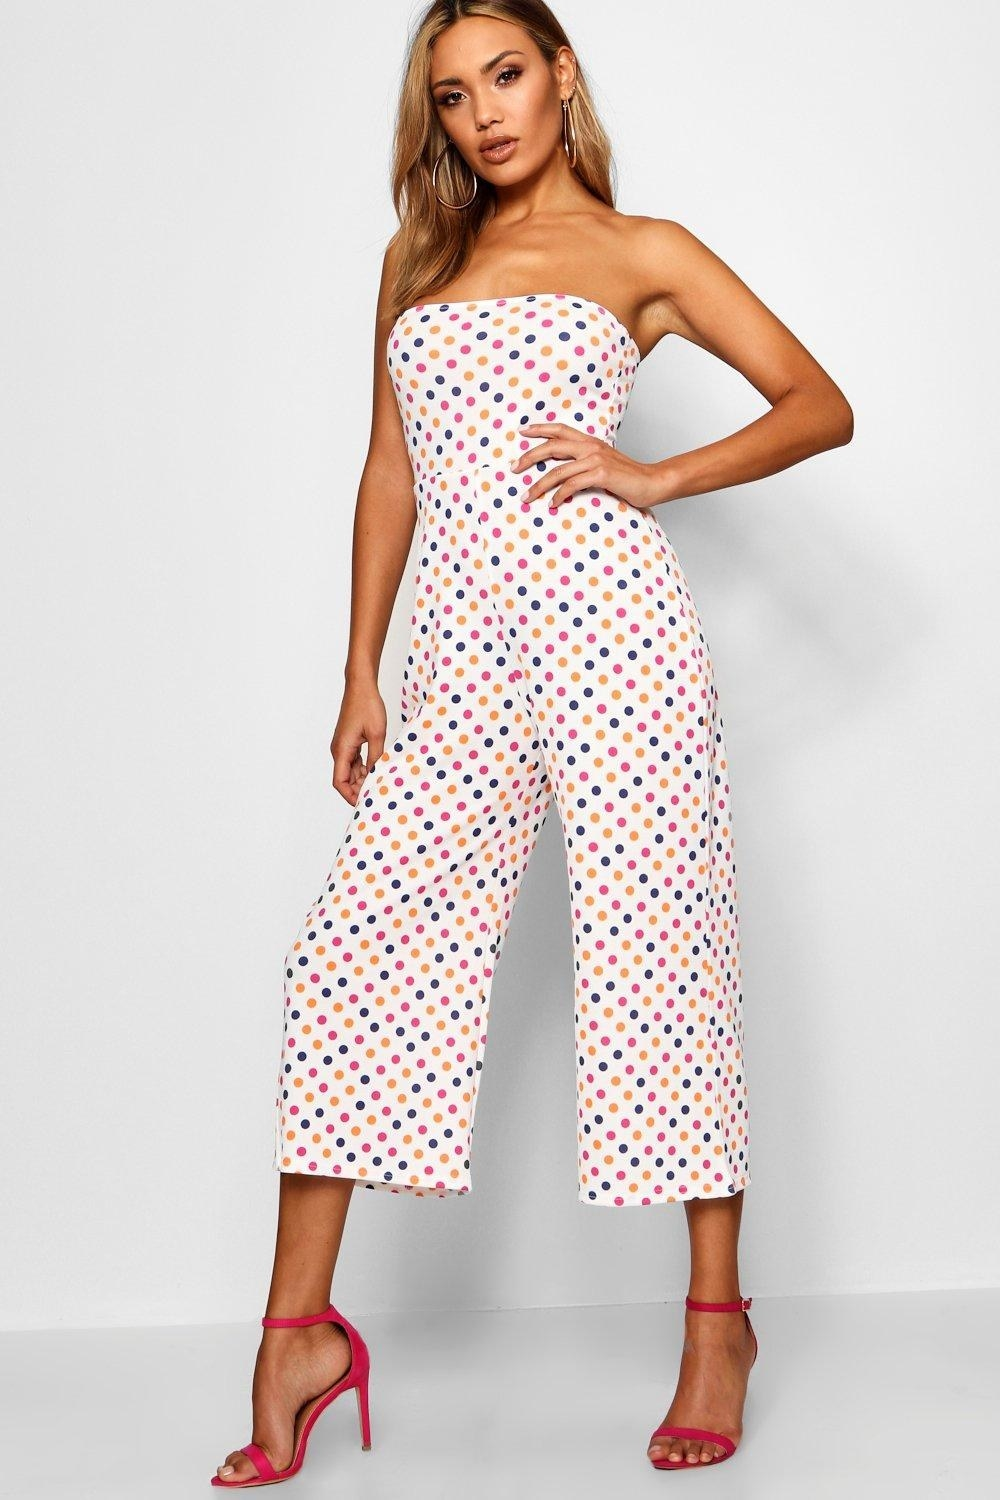 Price: $21 (originally $36, available in sizes 4–12)